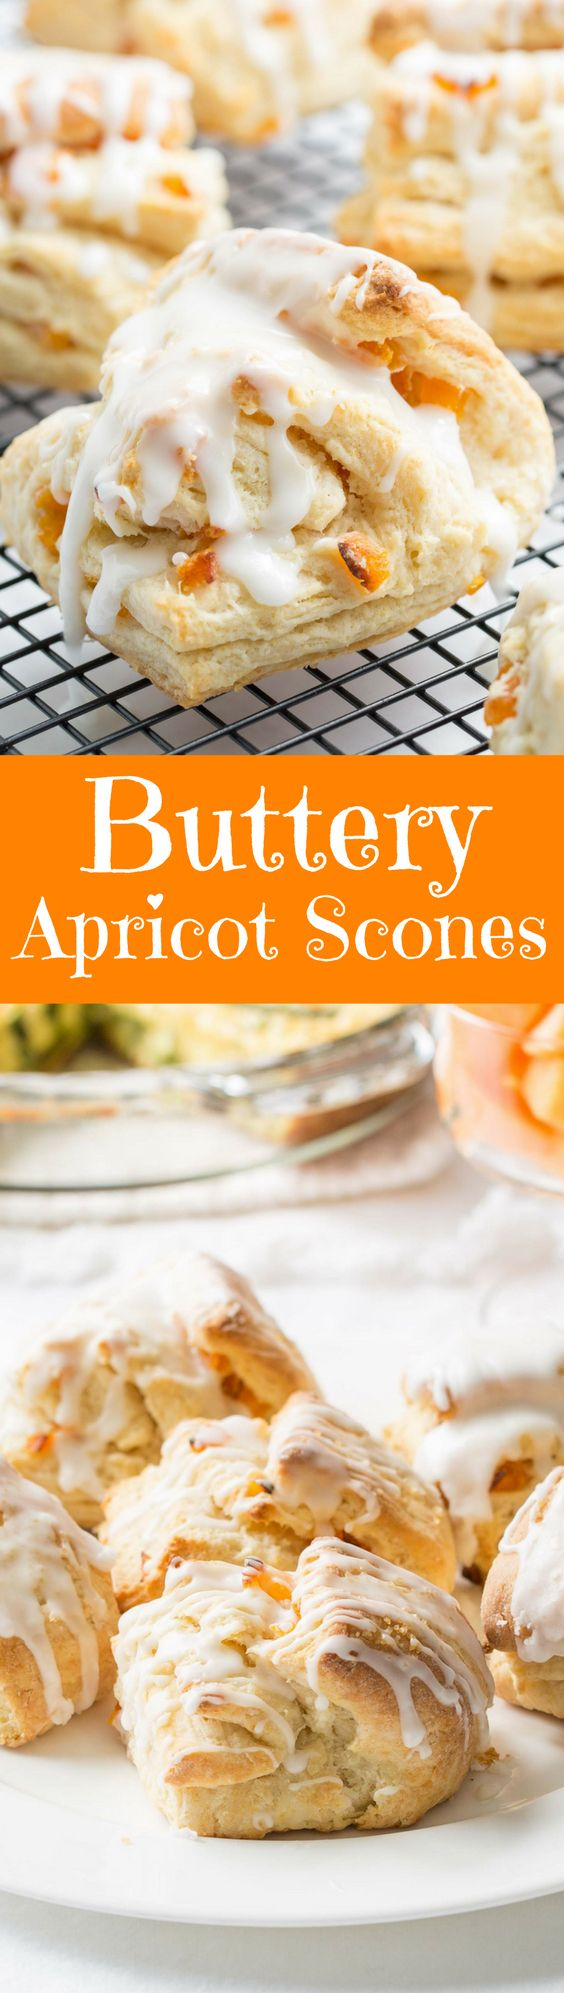 Buttery Apricot Scones ~ A light, flaky, buttery scone layered with chopped apricots and iced with an almond flavored glaze.